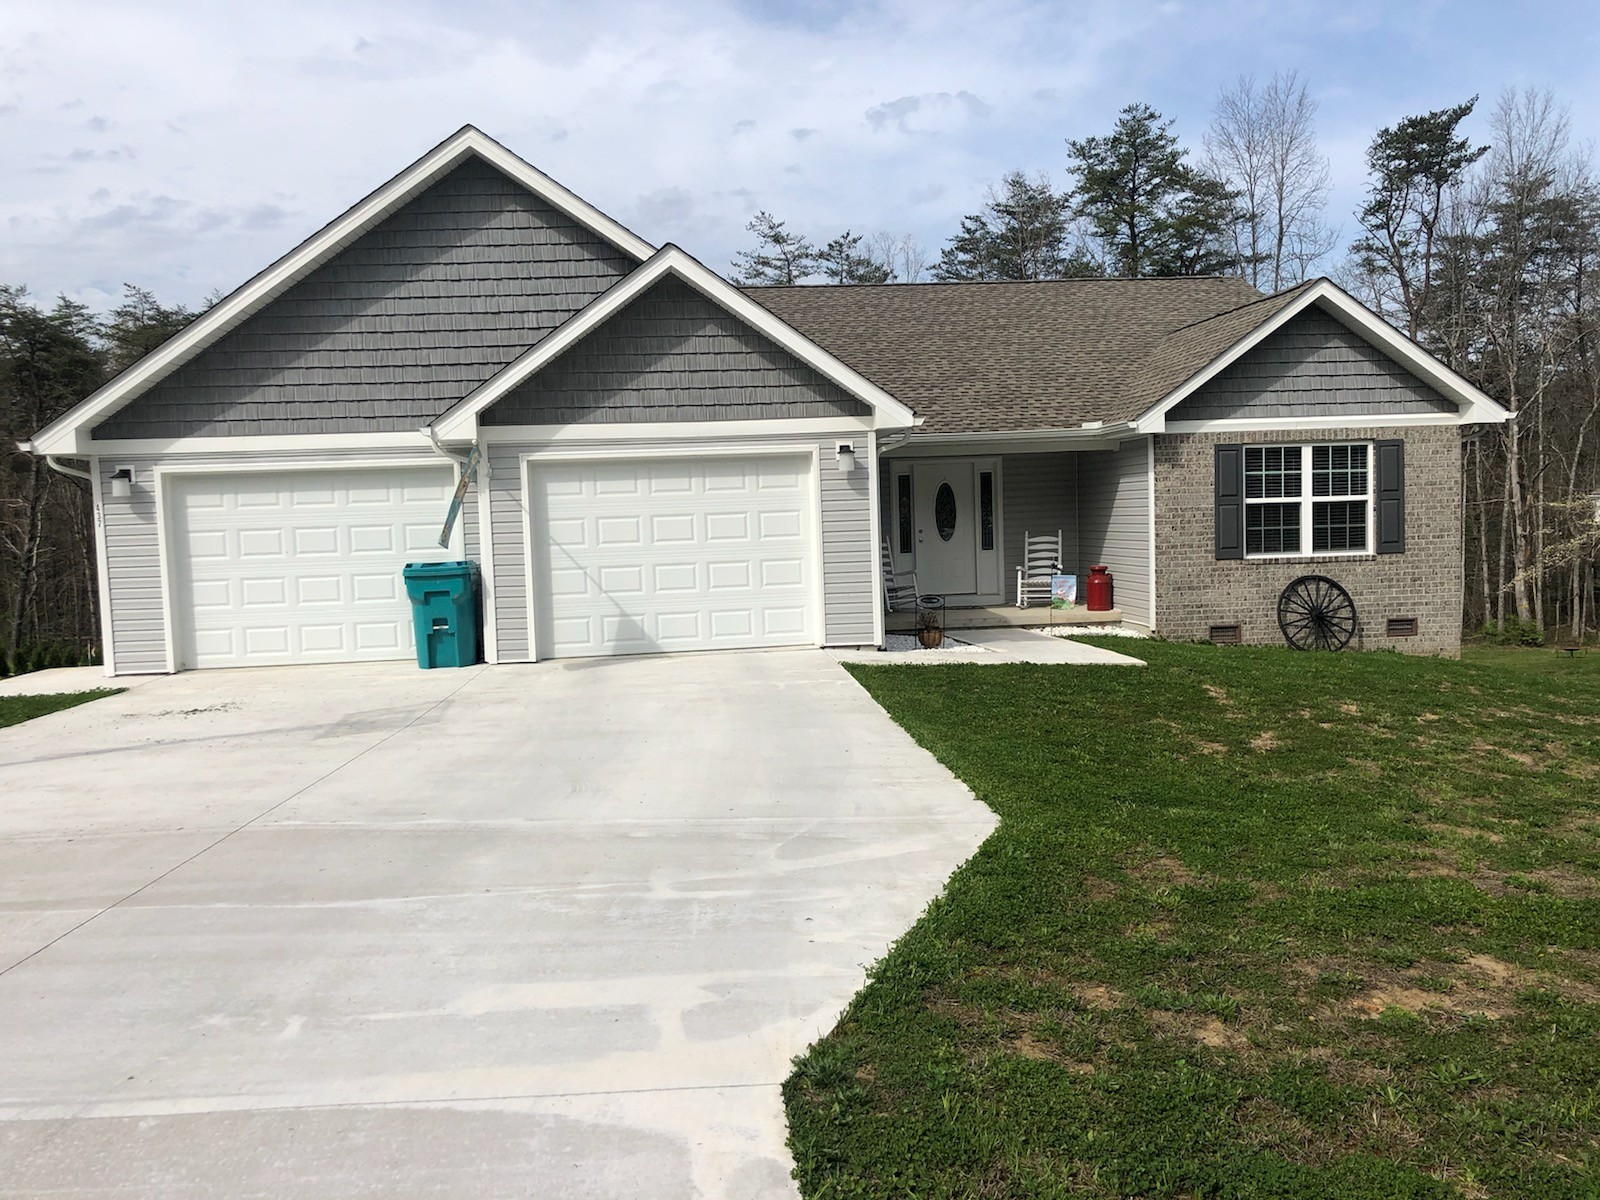 437 Deerfield Rd Property Photo - Crossville, TN real estate listing